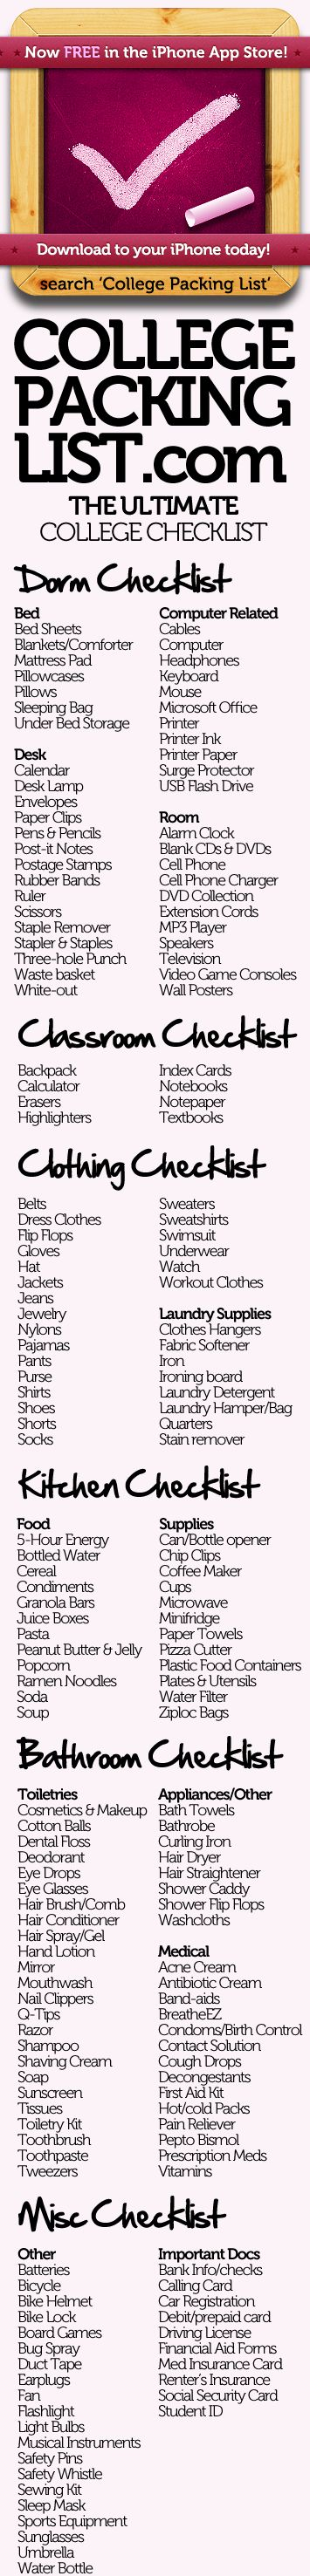 dorm checklistColleges Checklist, Colleges Life, Dorm Room, Colleges Pack Lists, Check Lists, Colleges Dorm, College Checklist, Dorm Checklist, College Packing Lists